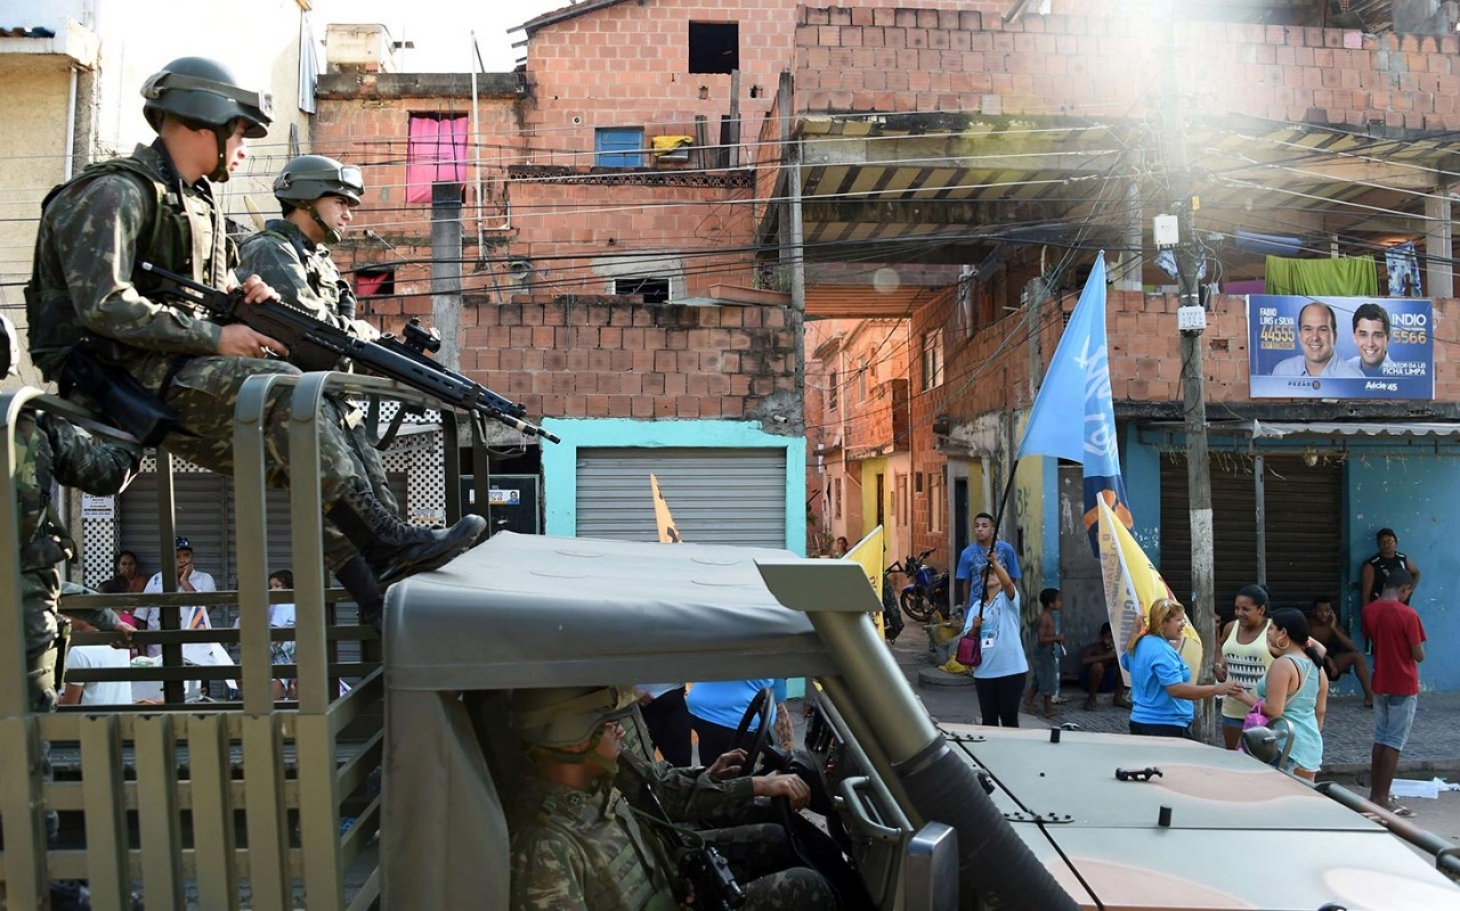 gangs in rio Recently, rival drug trafficking gangs and factions in rio de janeiro's giant  rocinha favela have fought several frightening street battles for.